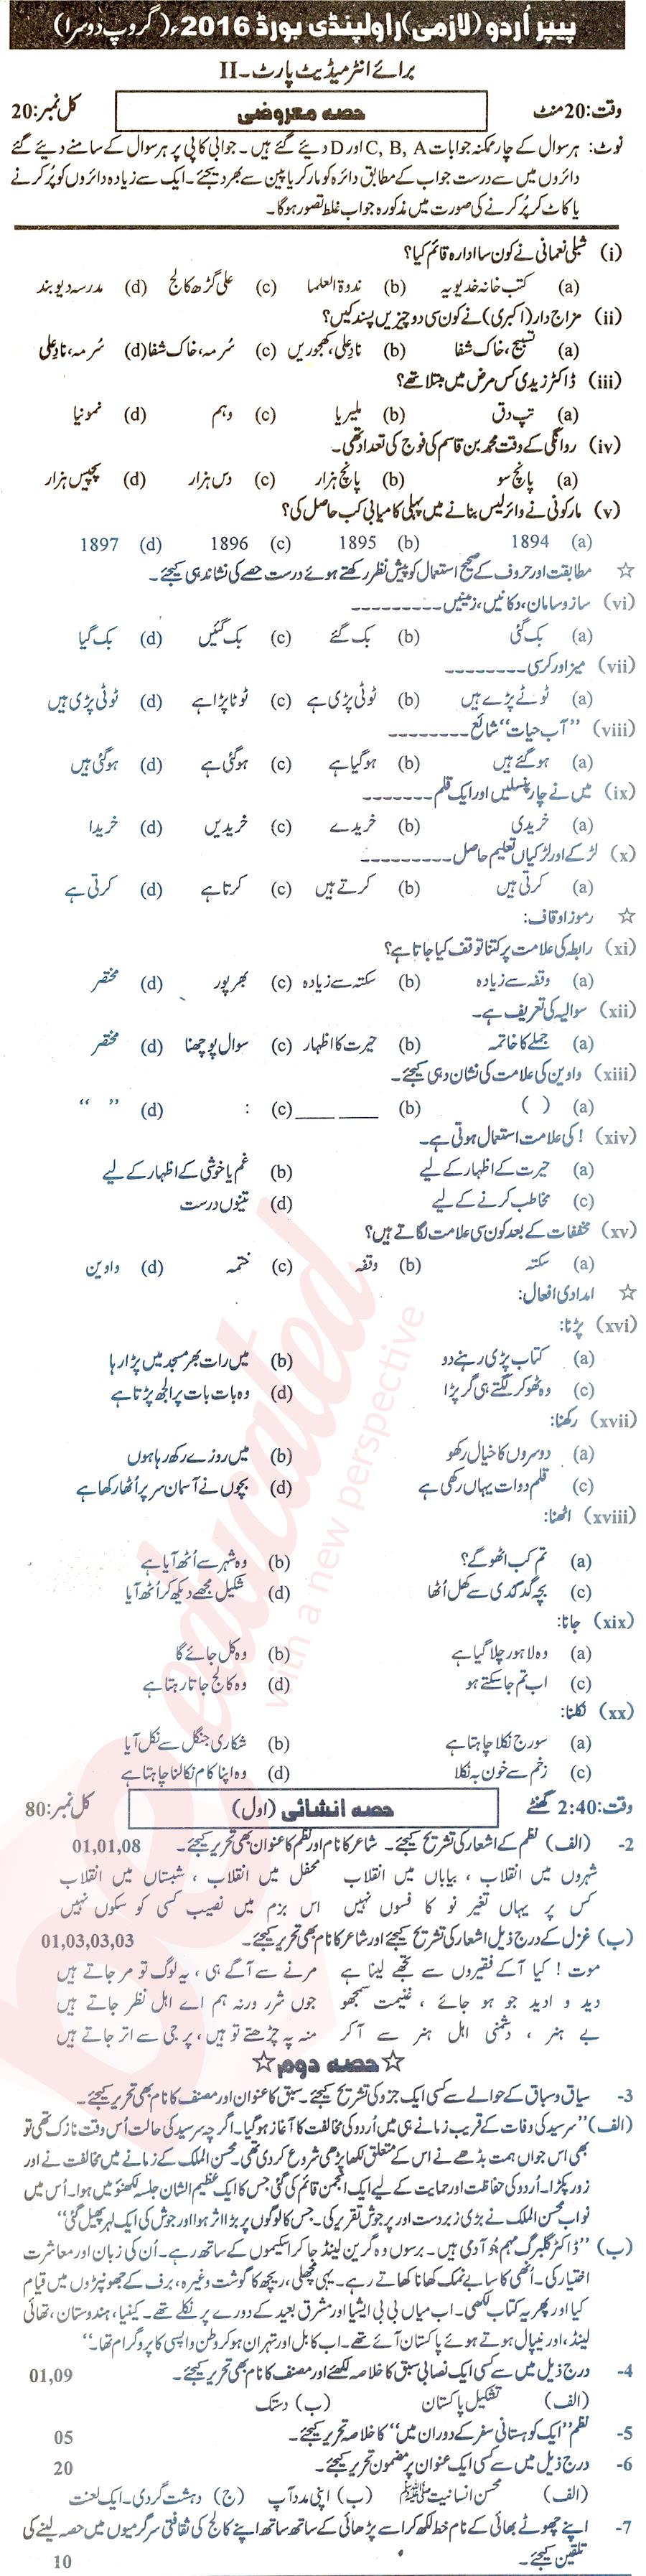 urdu subject bise rawalpindi 12th class fa part 2 past papers